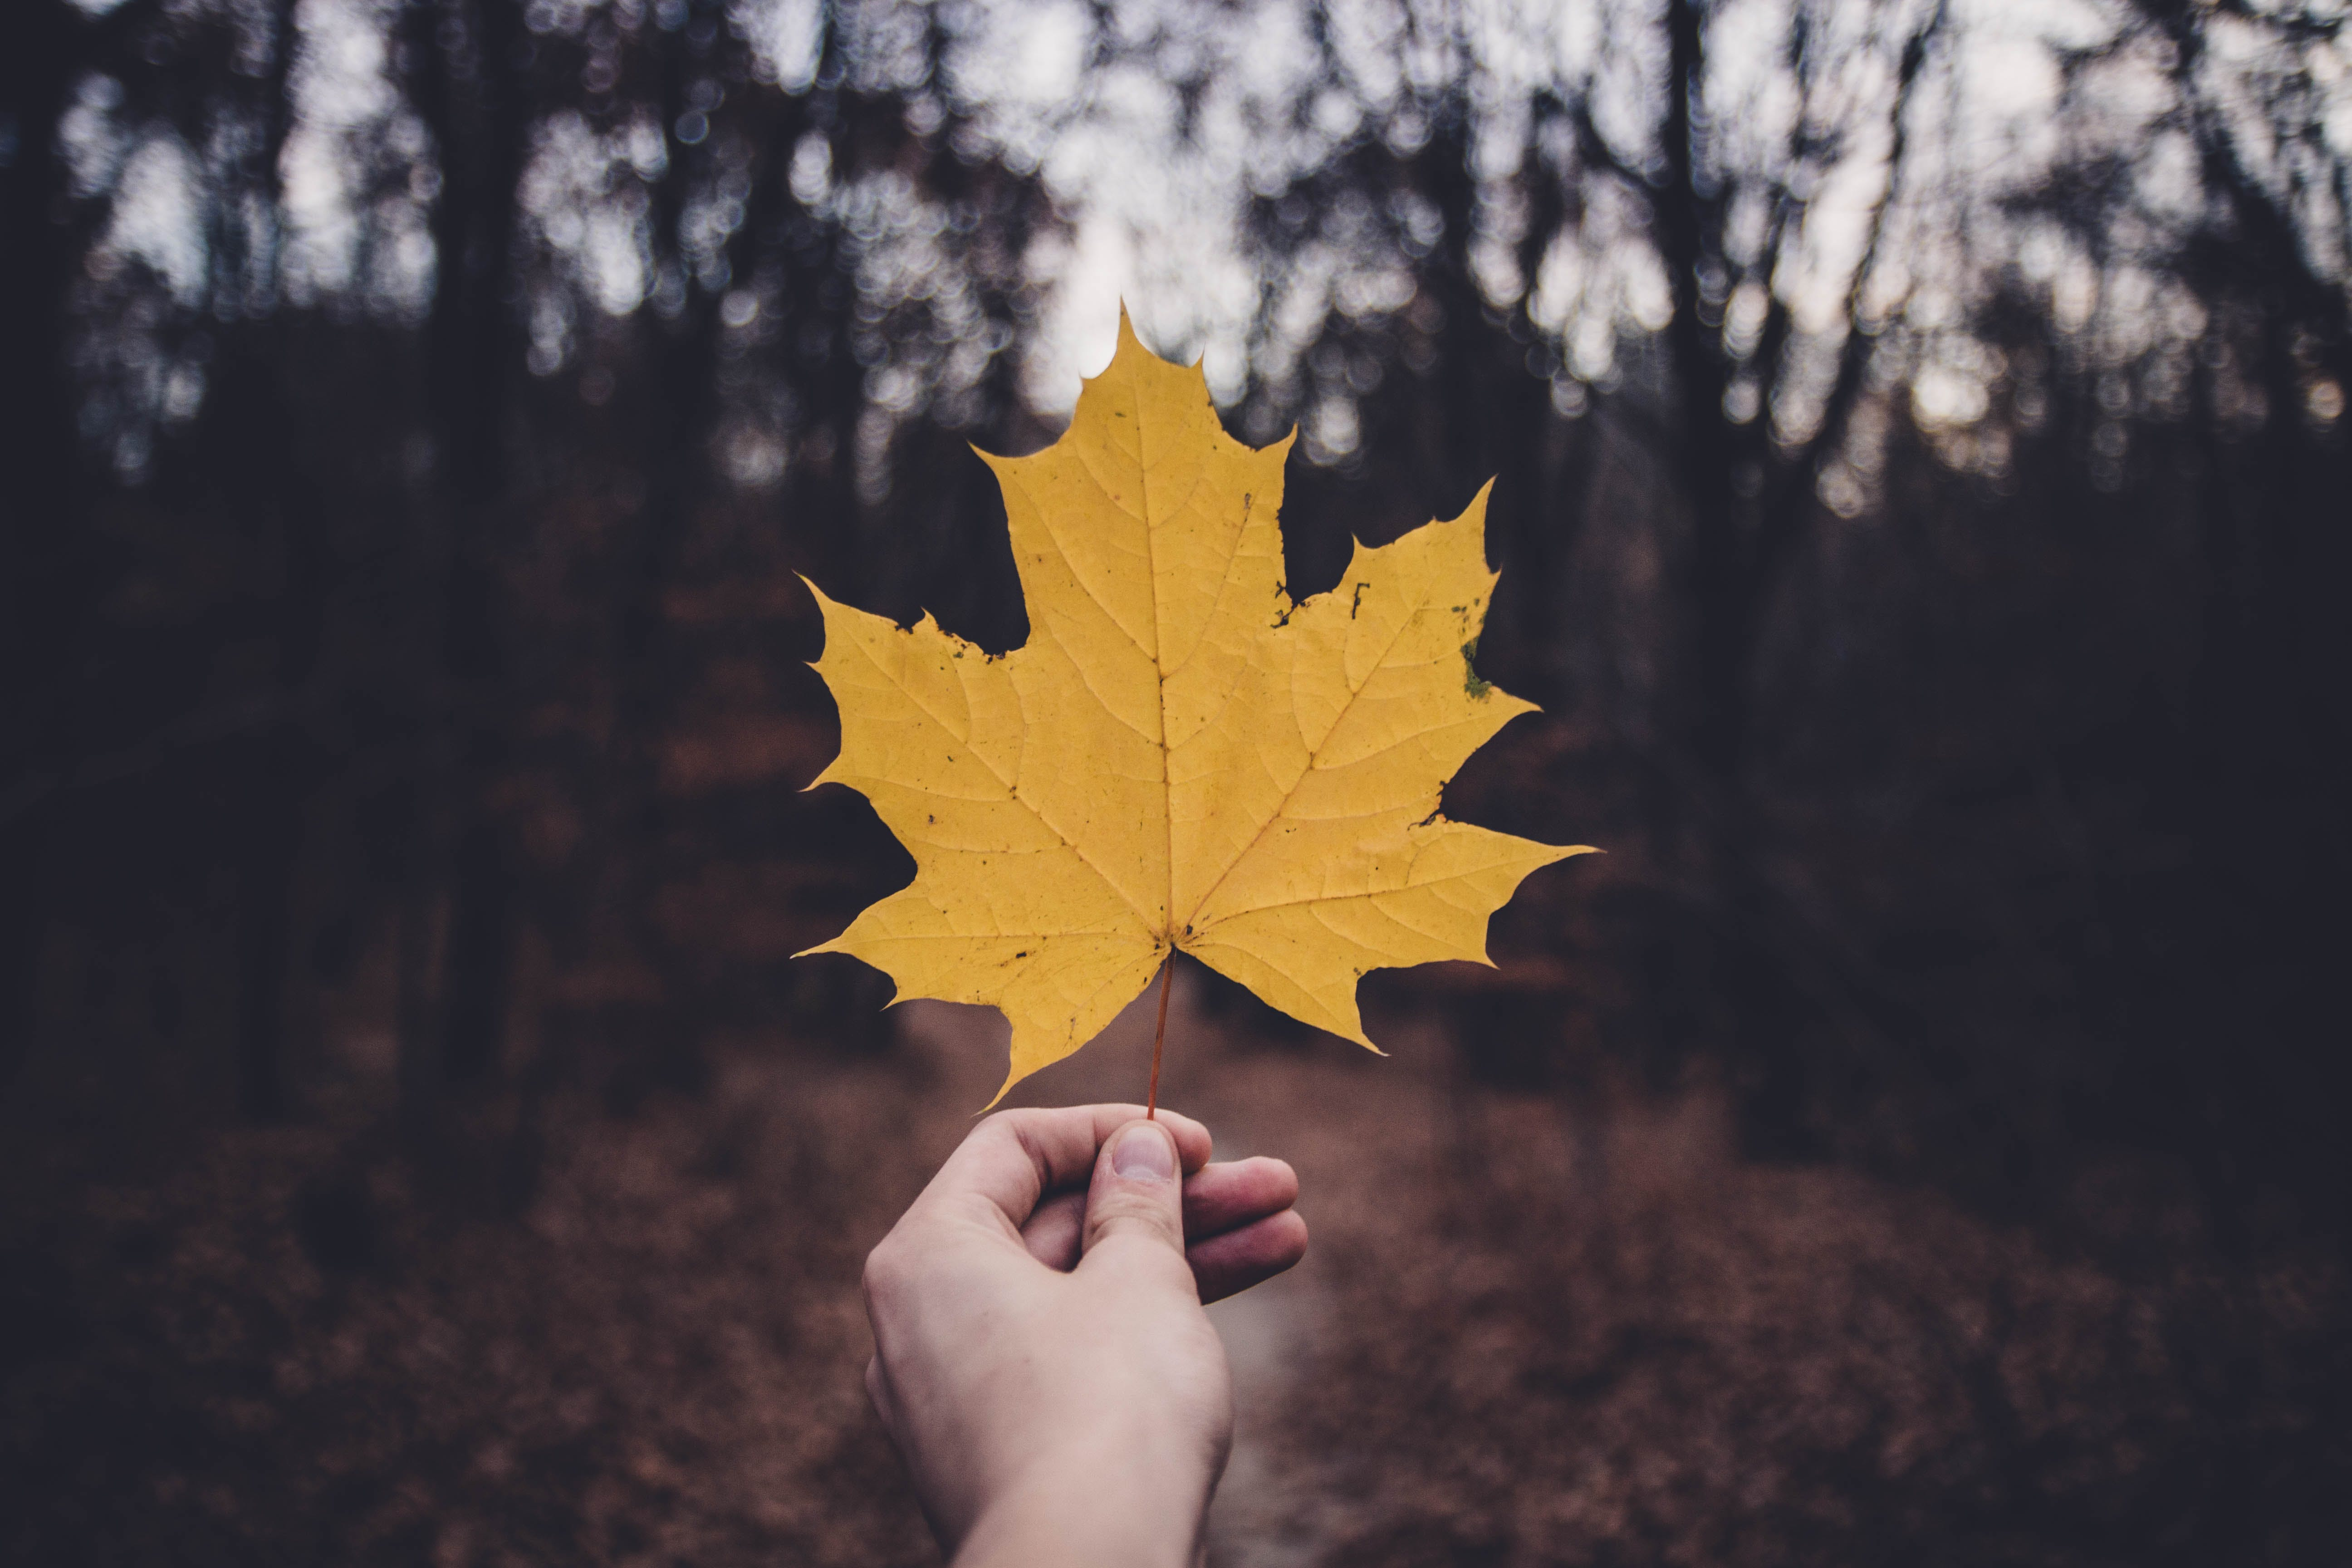 Low Light Photography of Dried Maple Leaf